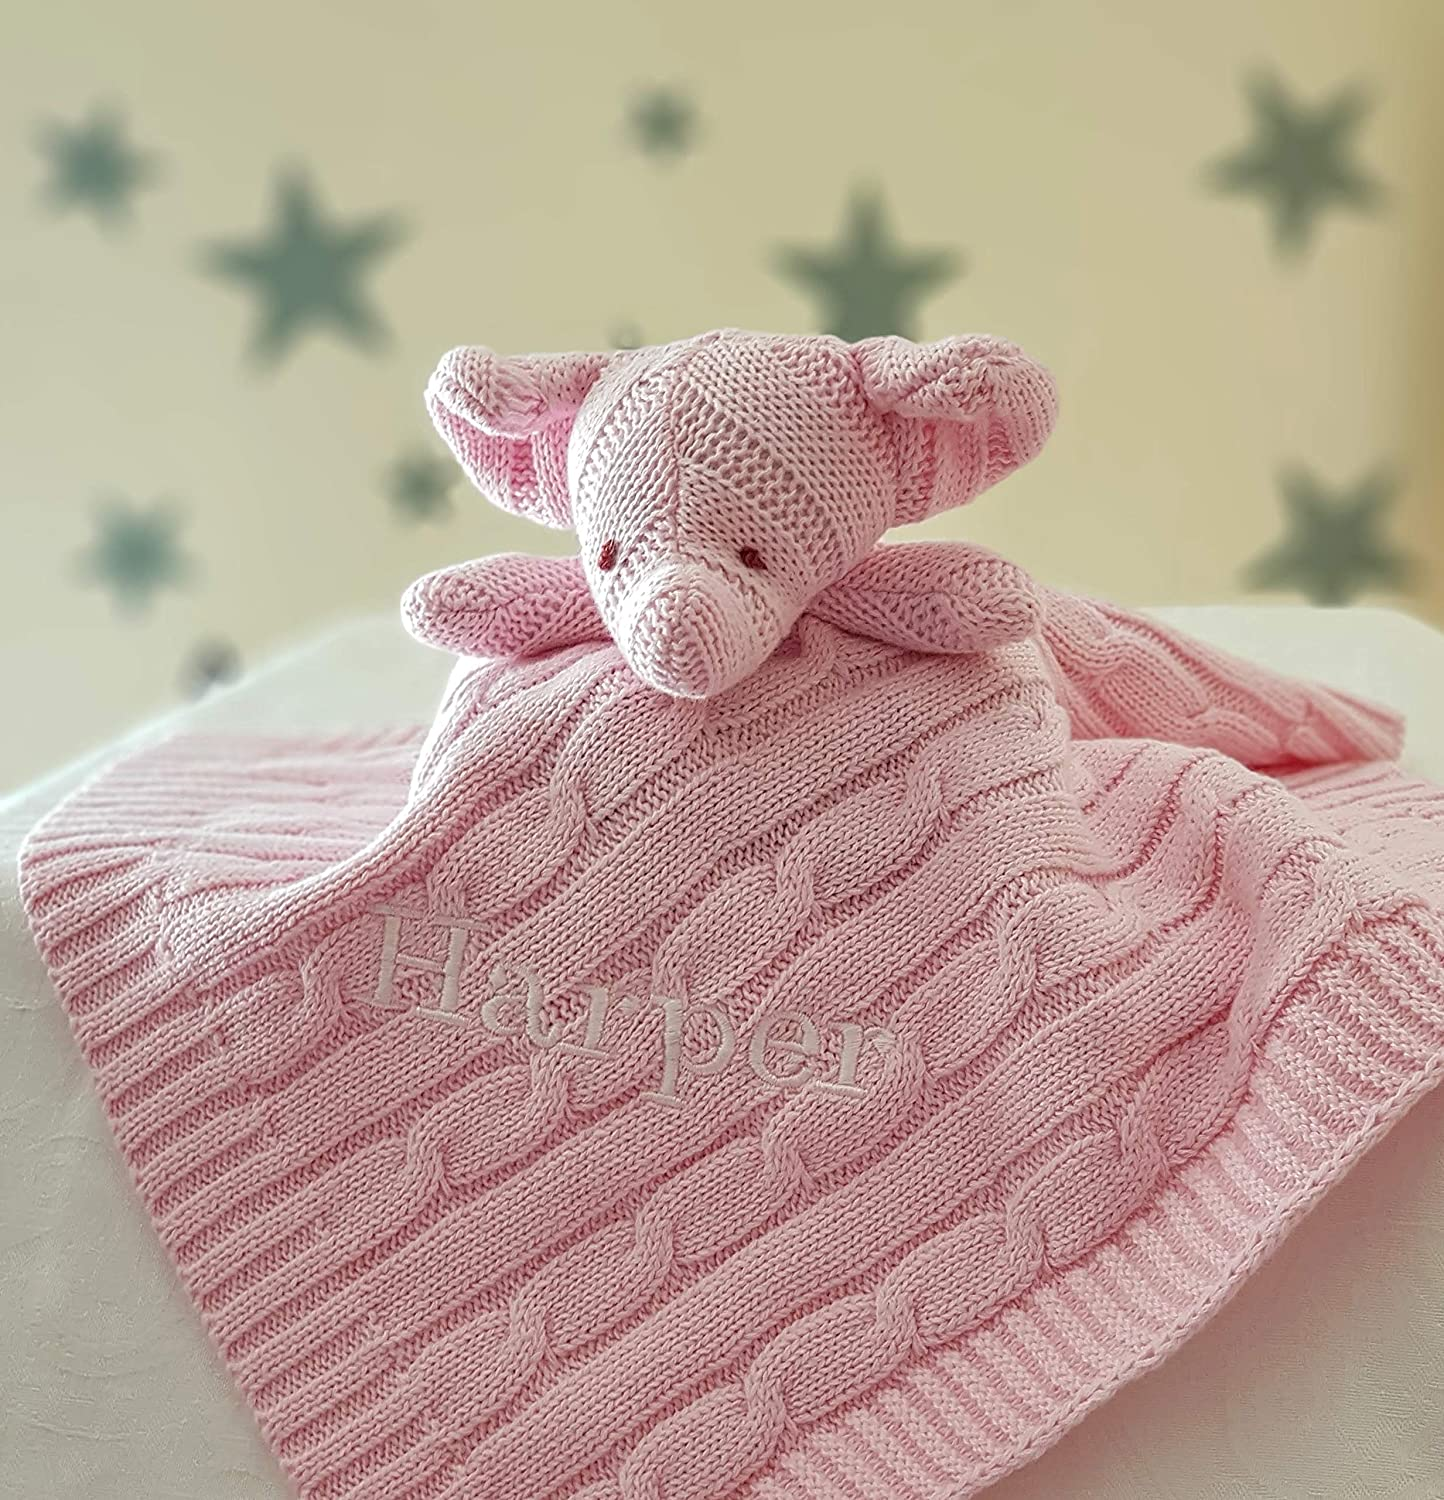 Ashley elephant comforter by Sarah Coad, Inside Crochet issue 49 ... | 1500x1444